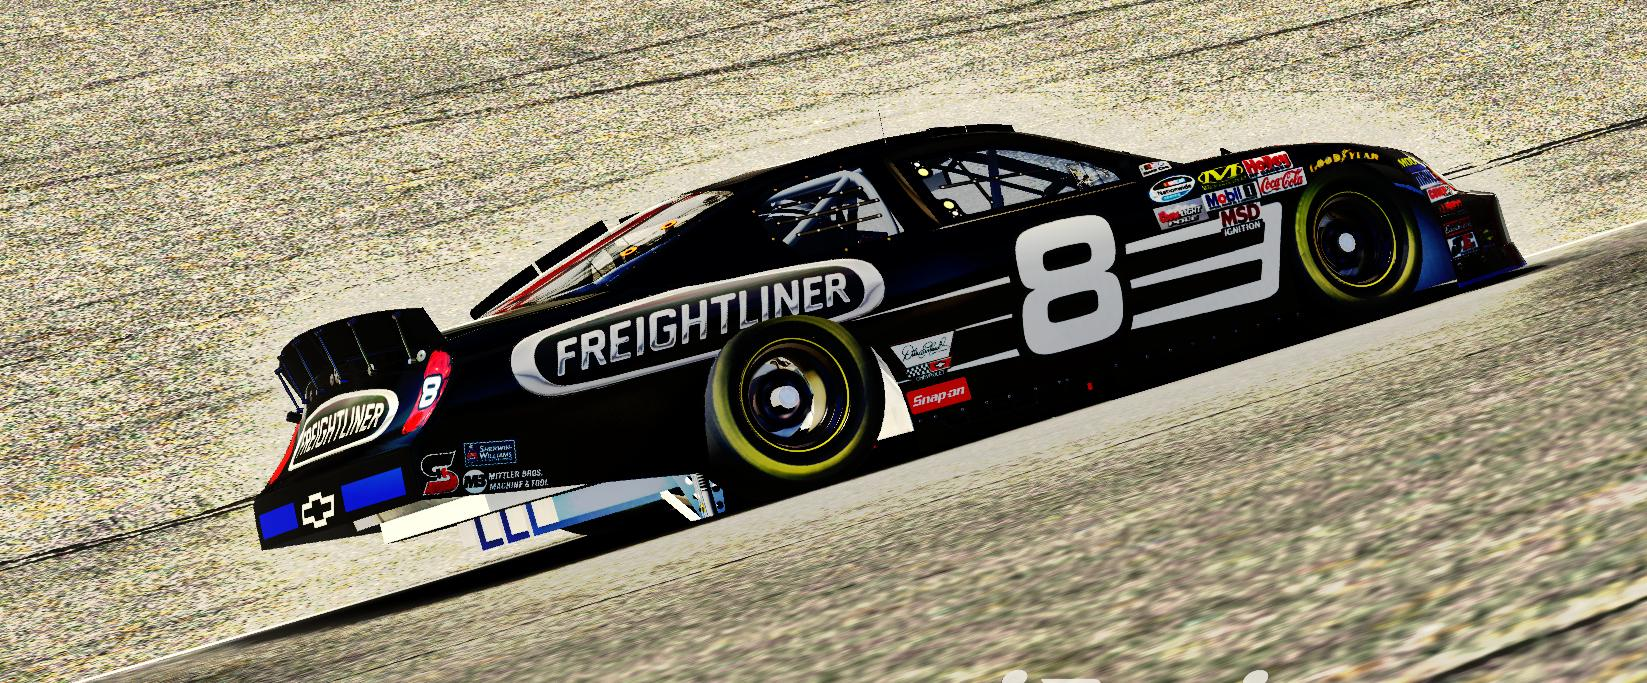 Preview of Martin Truex Jr 08 NNS Freightliner DEI by Andy Trupiano